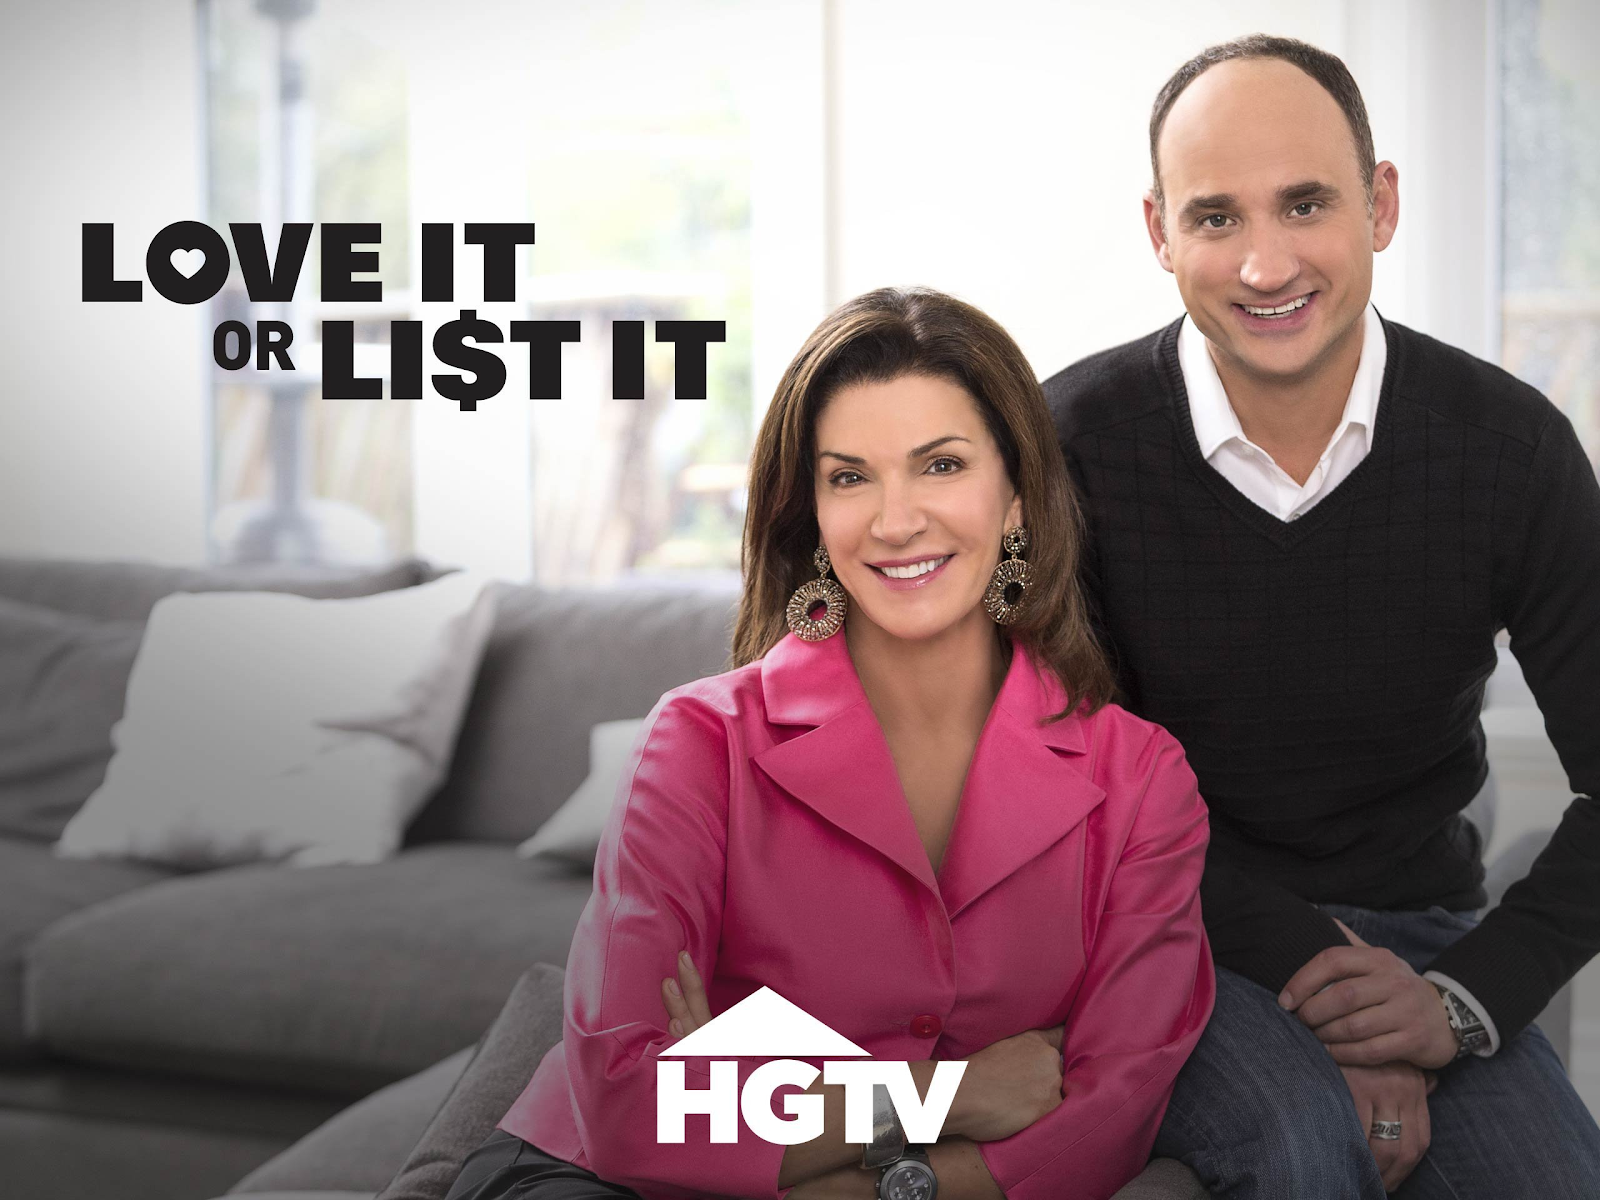 Hilary Farr and David Vesentin sit side by side smiling on a couch